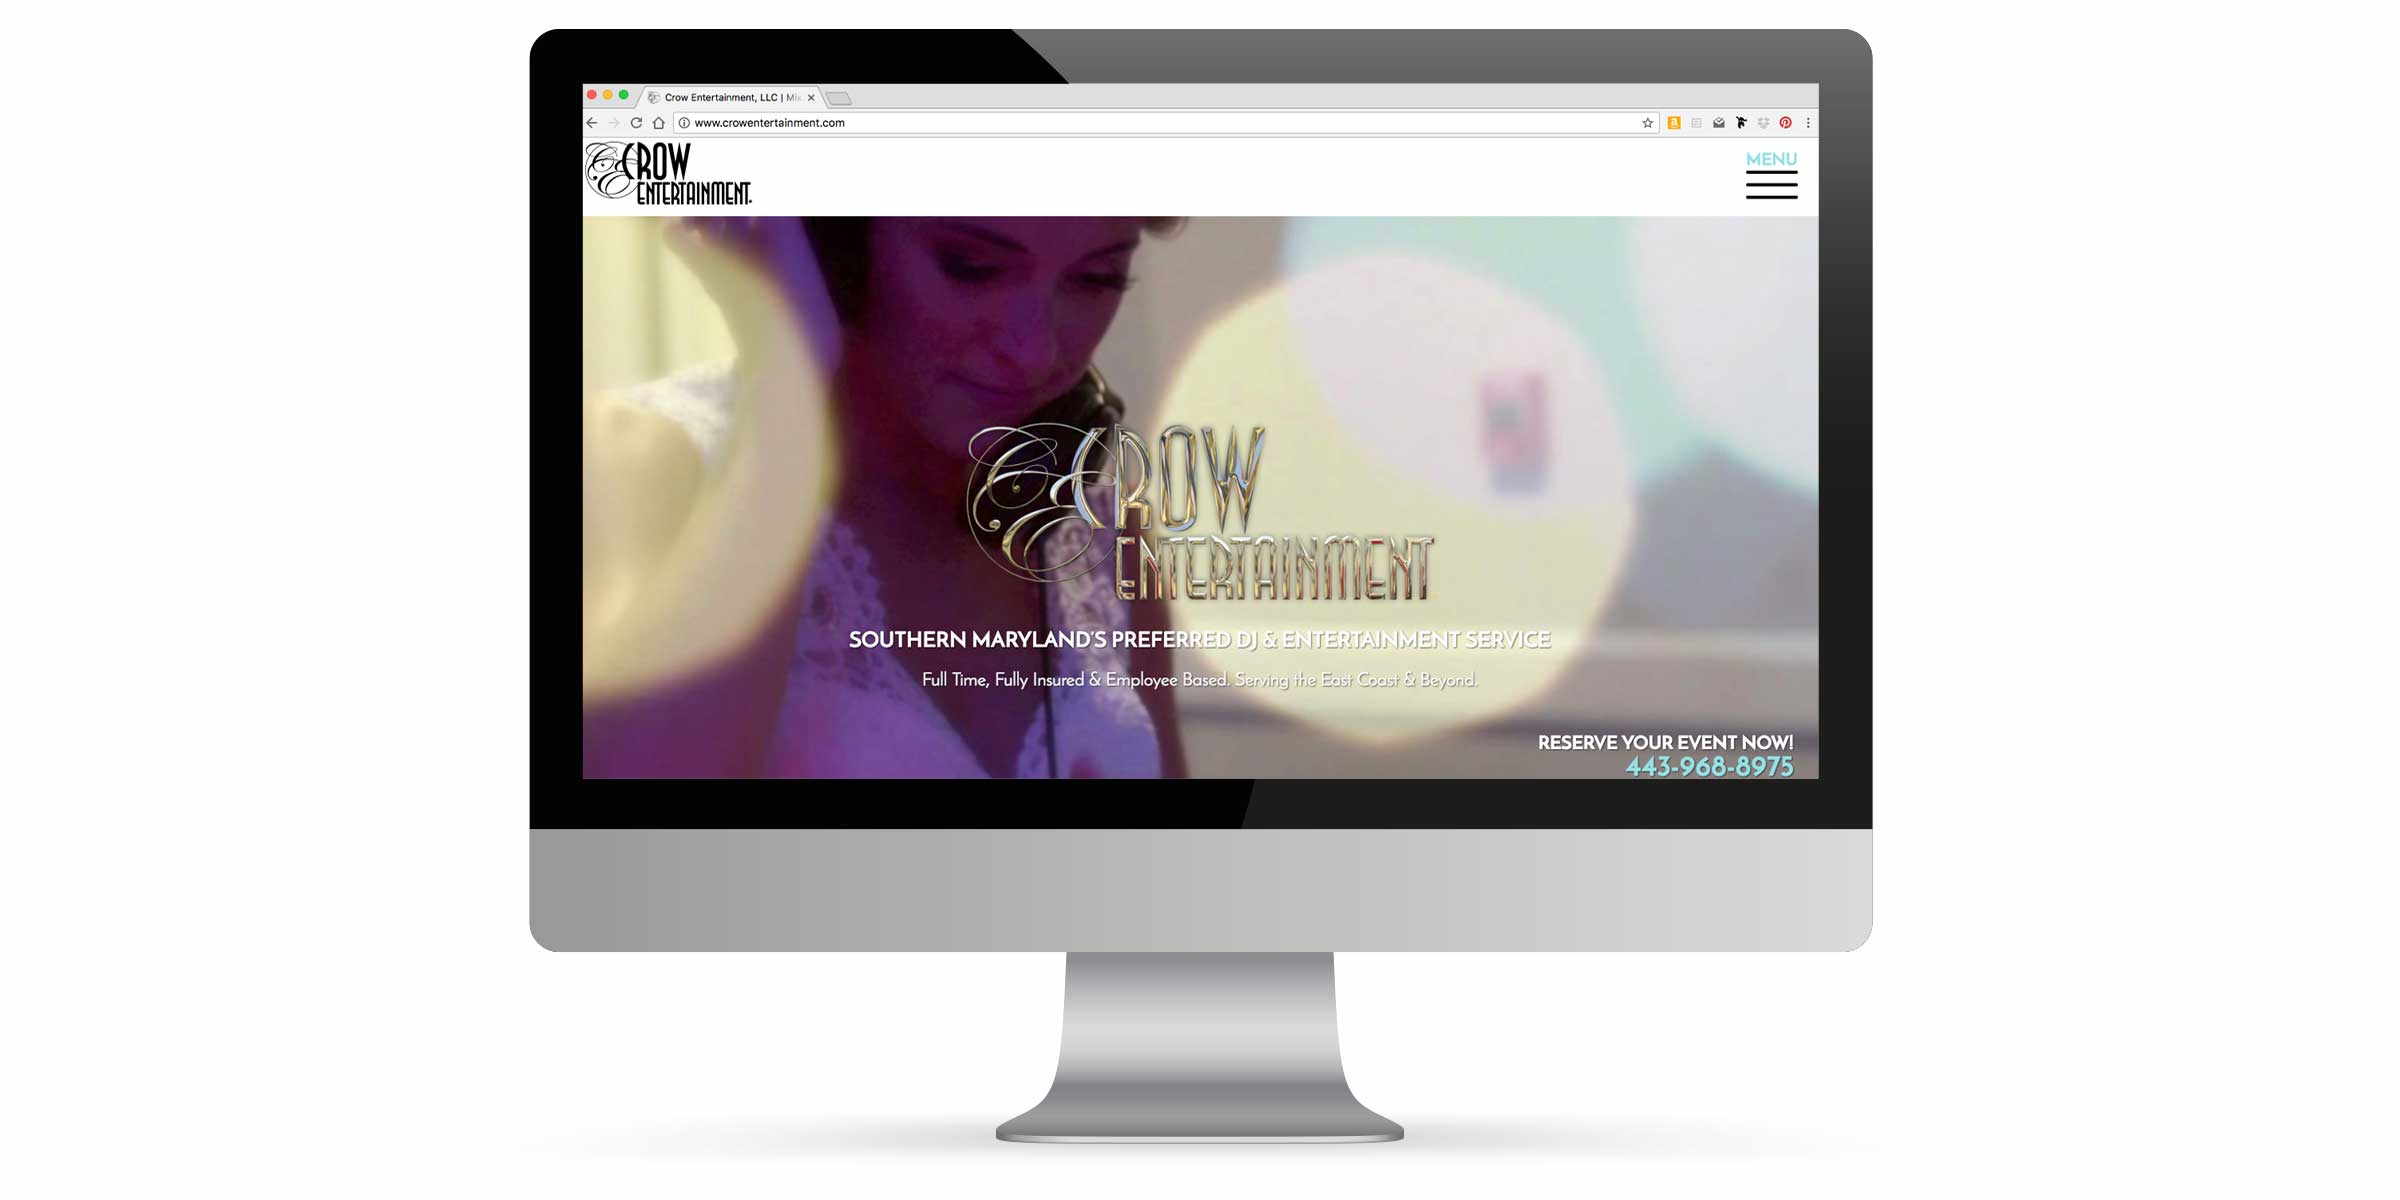 Crow Entertainment Website Portfolio